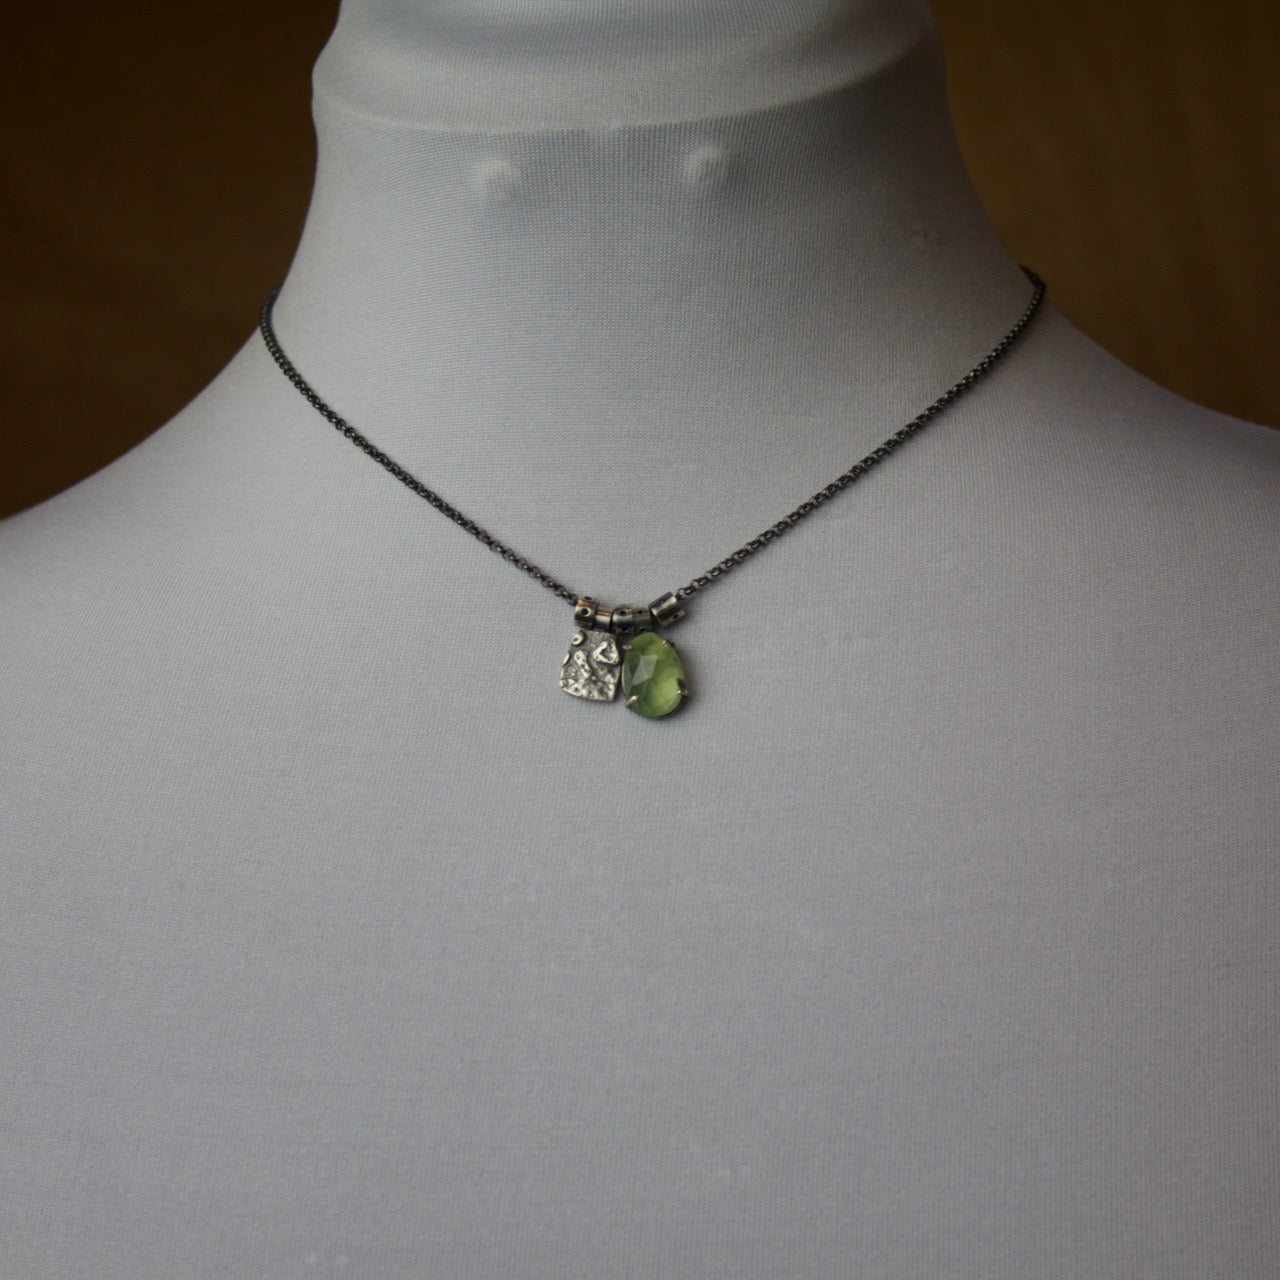 Prehnite Charm Necklace